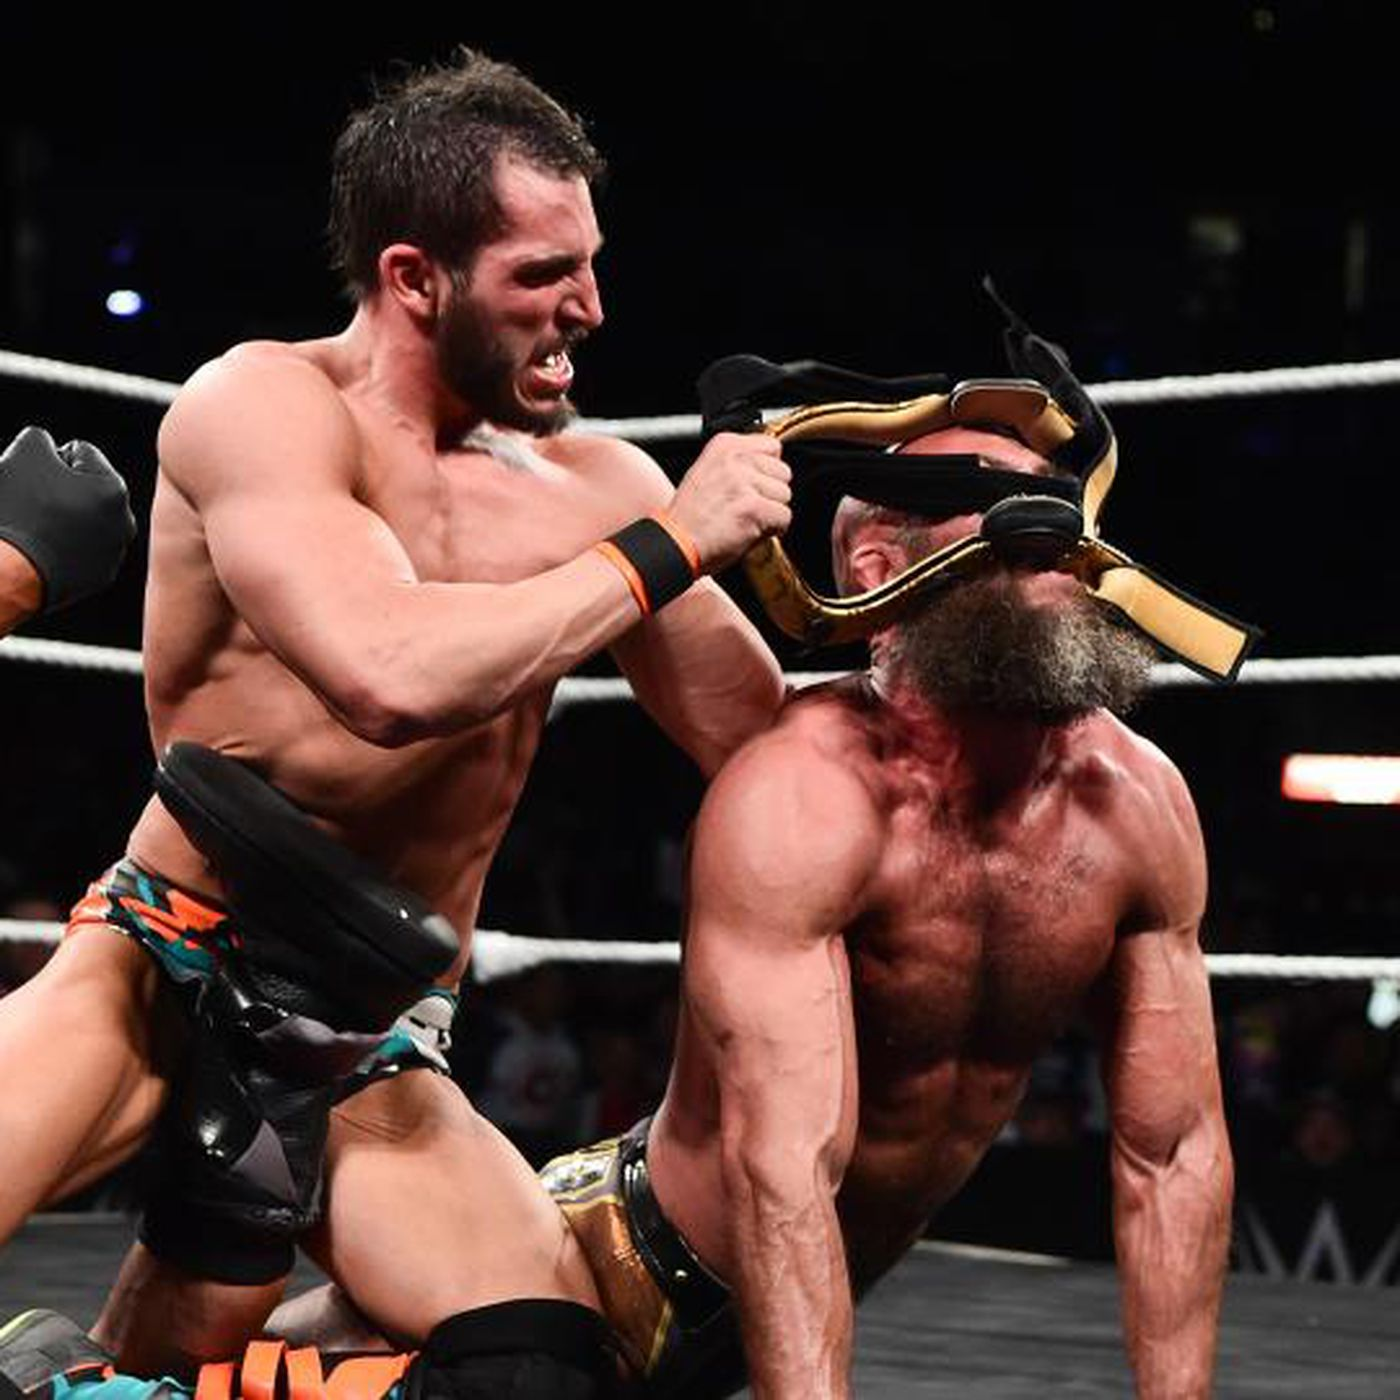 Image result for nxt takeover gargano vs ciampa